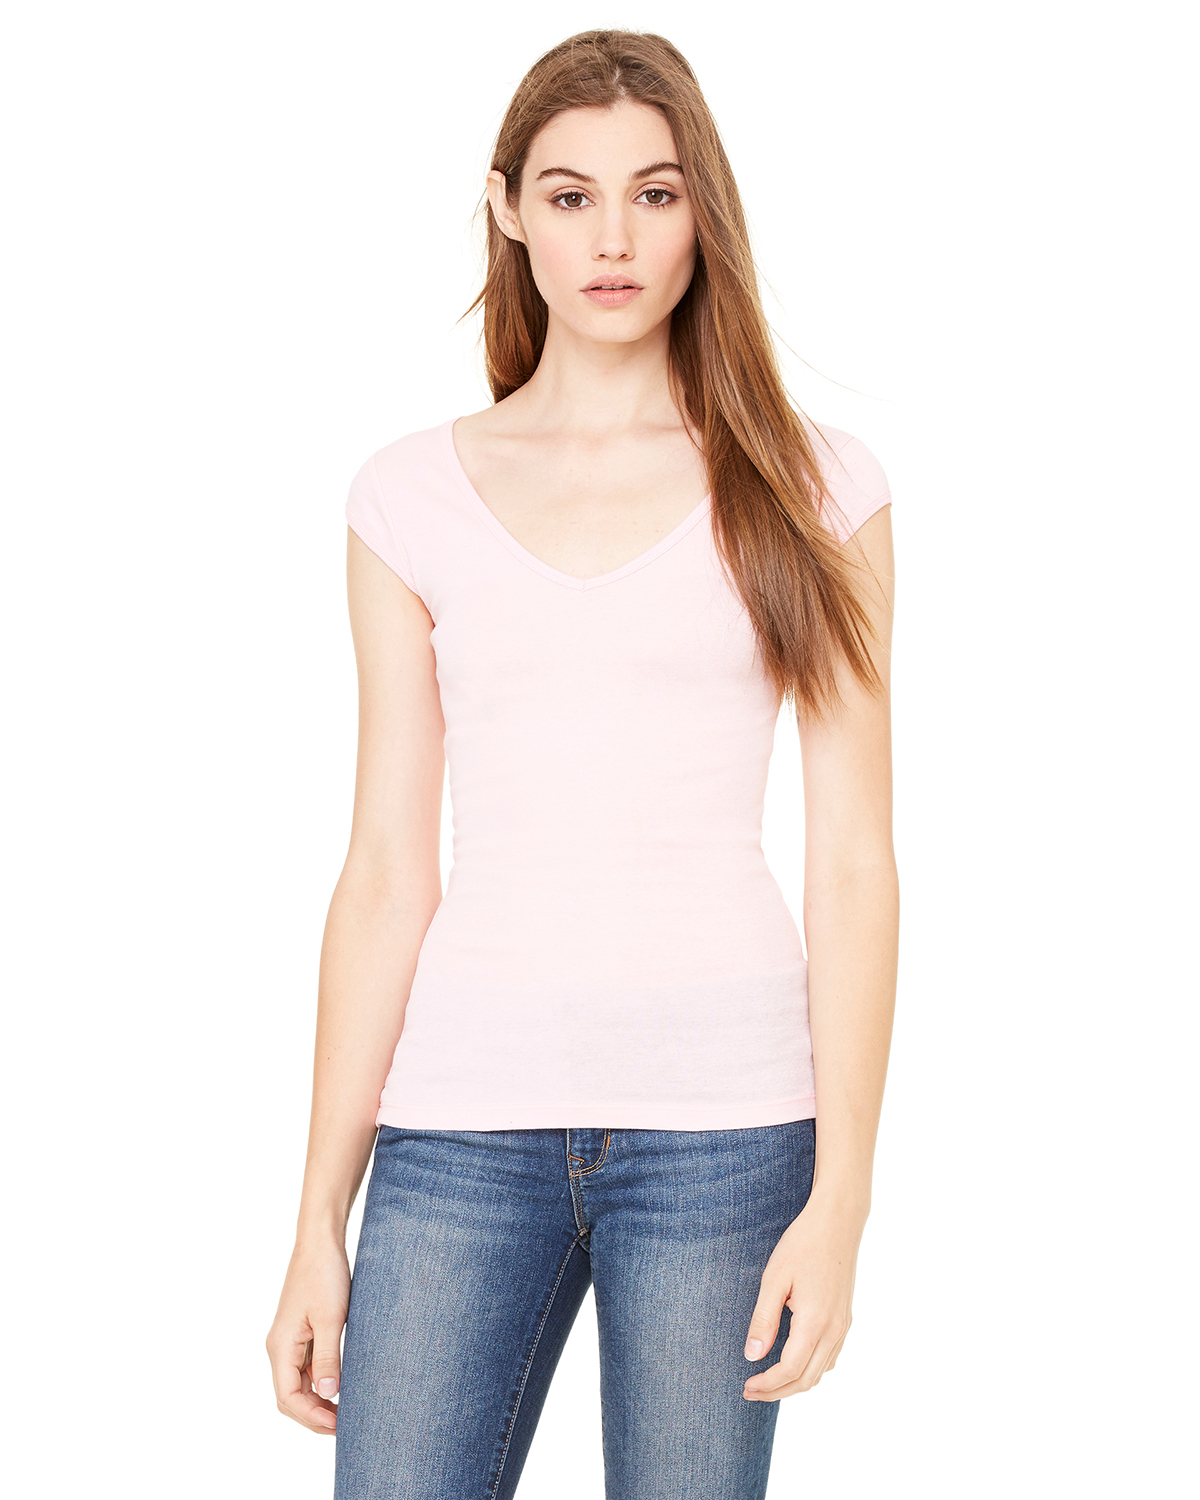 Bella B8705  Women's Sheer Rib Cap Sleeve V-Neck T-Shirt